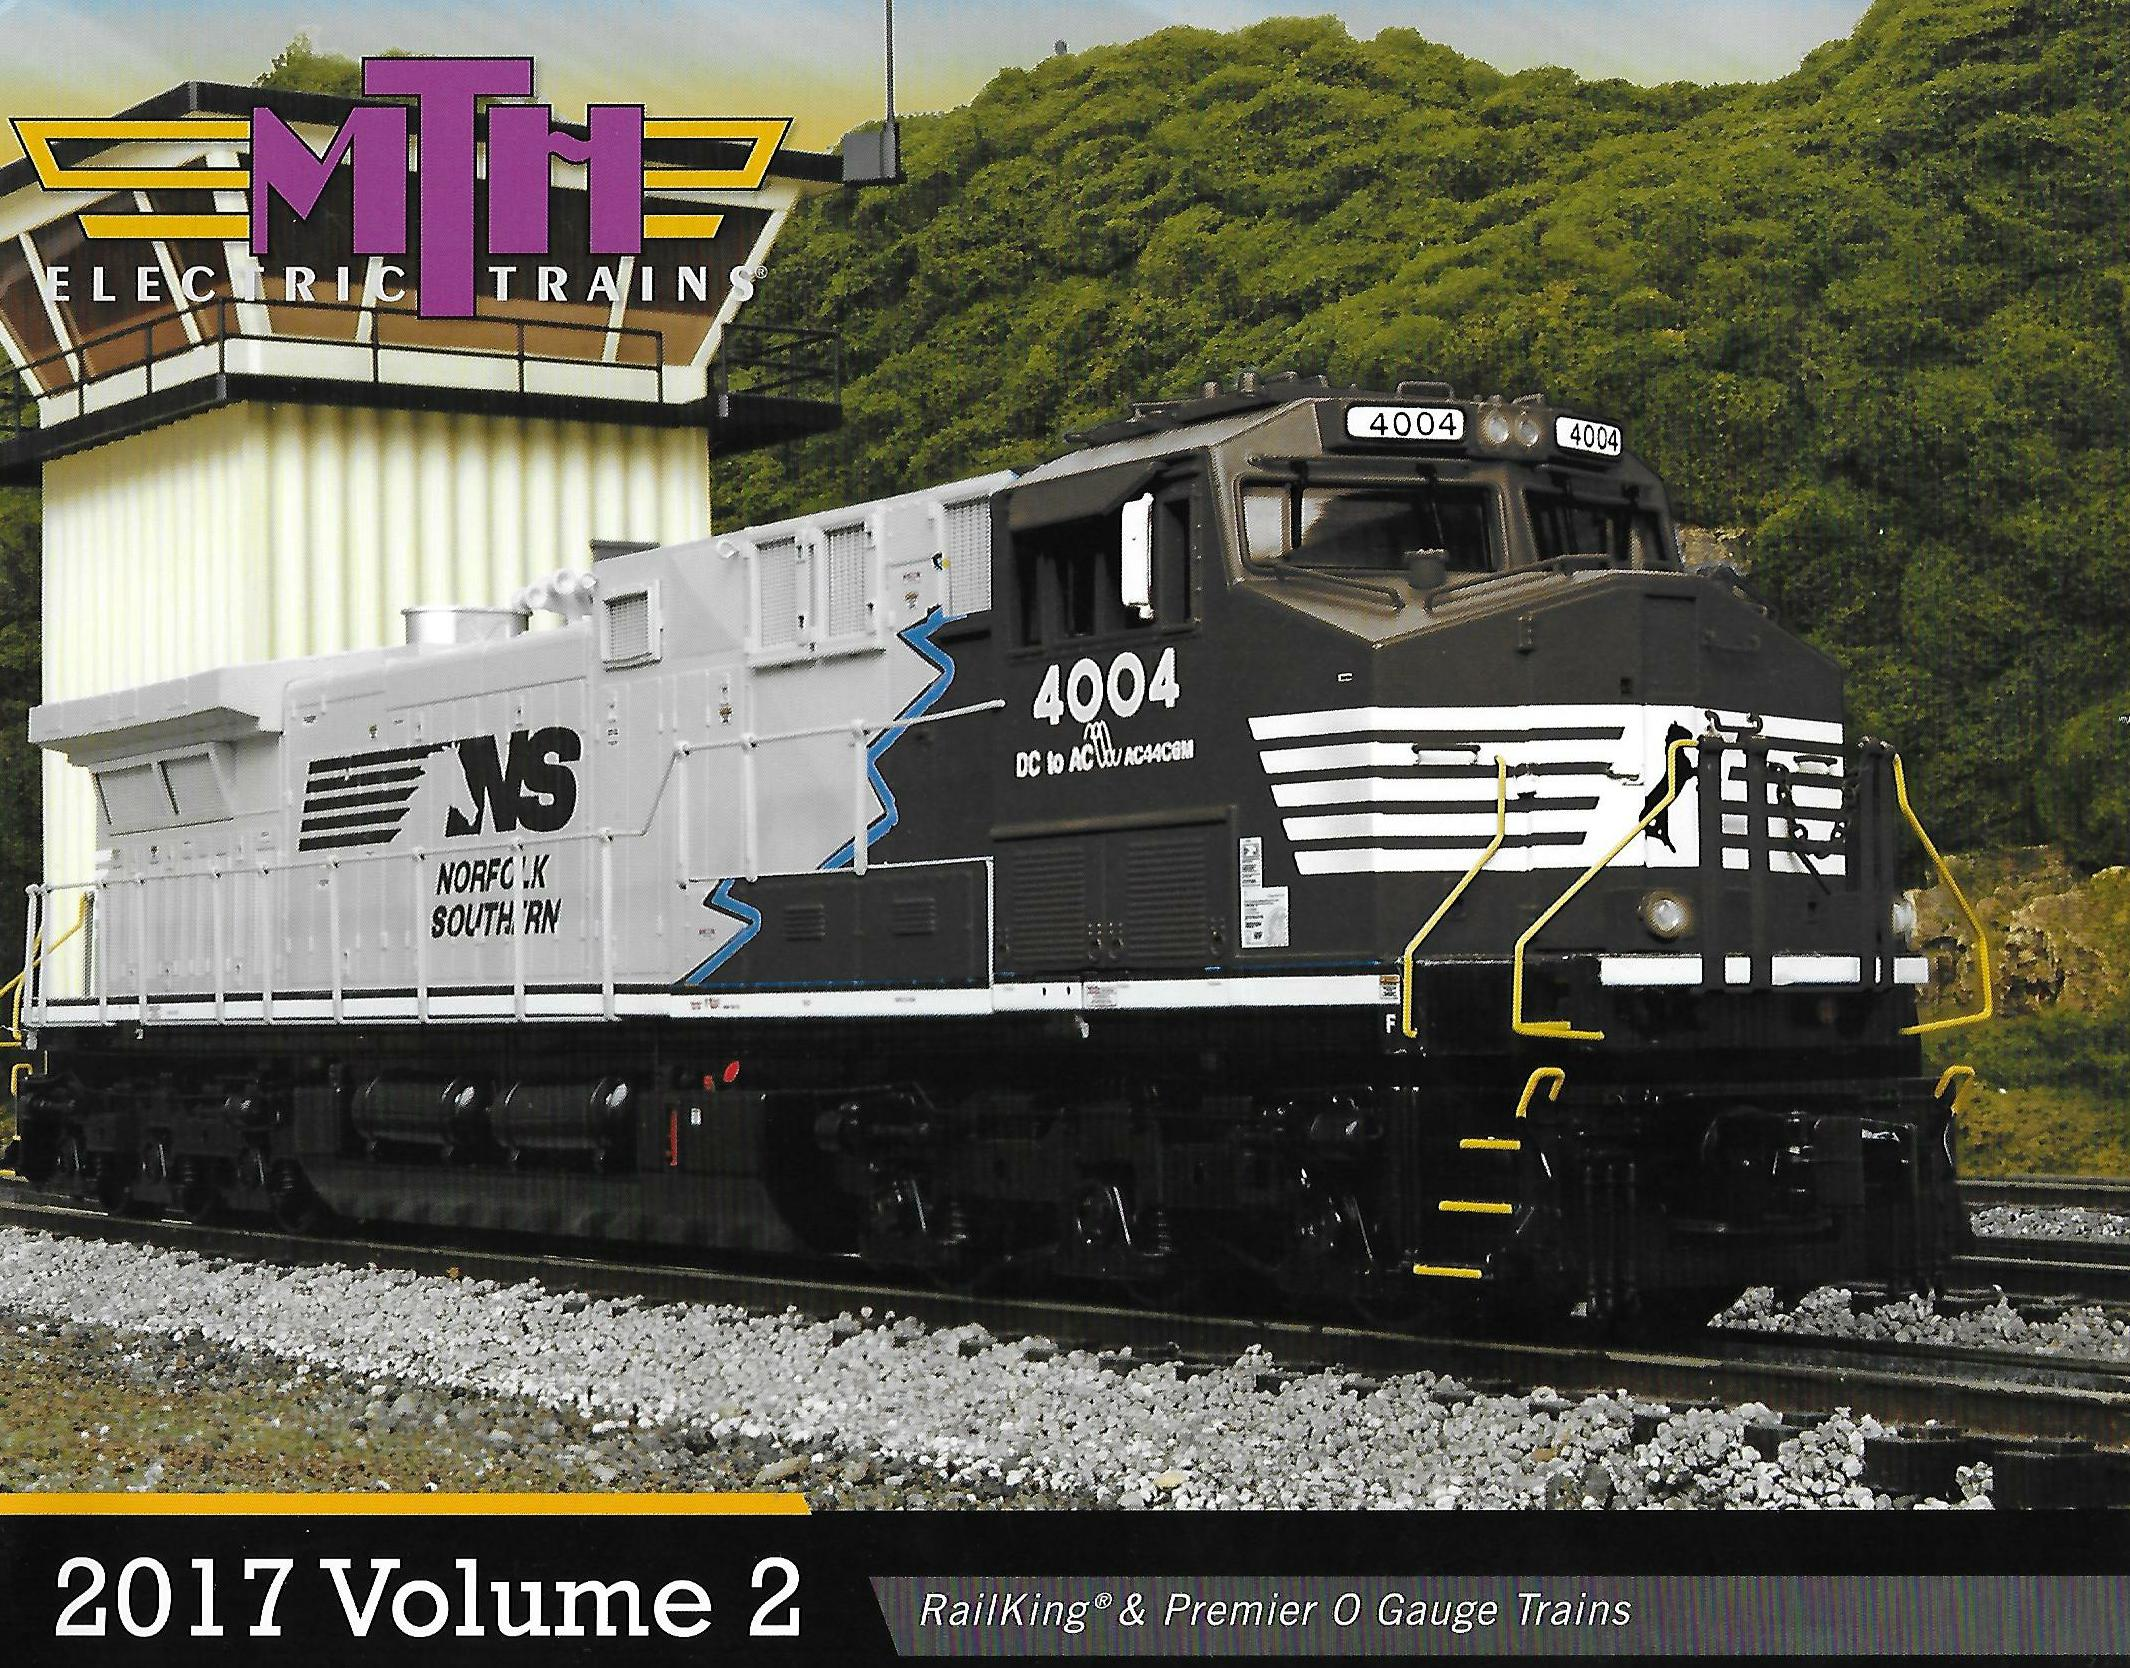 MTH 2017 Volume 2 Catalog image